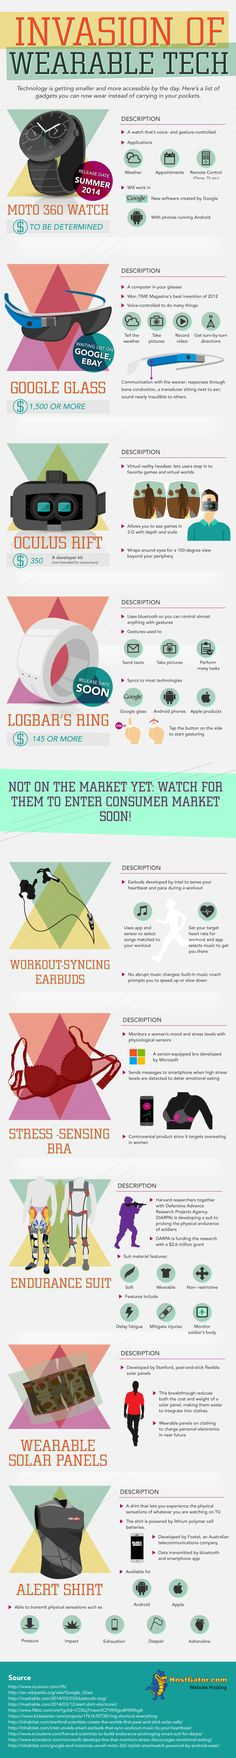 Invasion of Wearable Tech  #WearableTech #Technology | #infographics repinned by @Piktochart